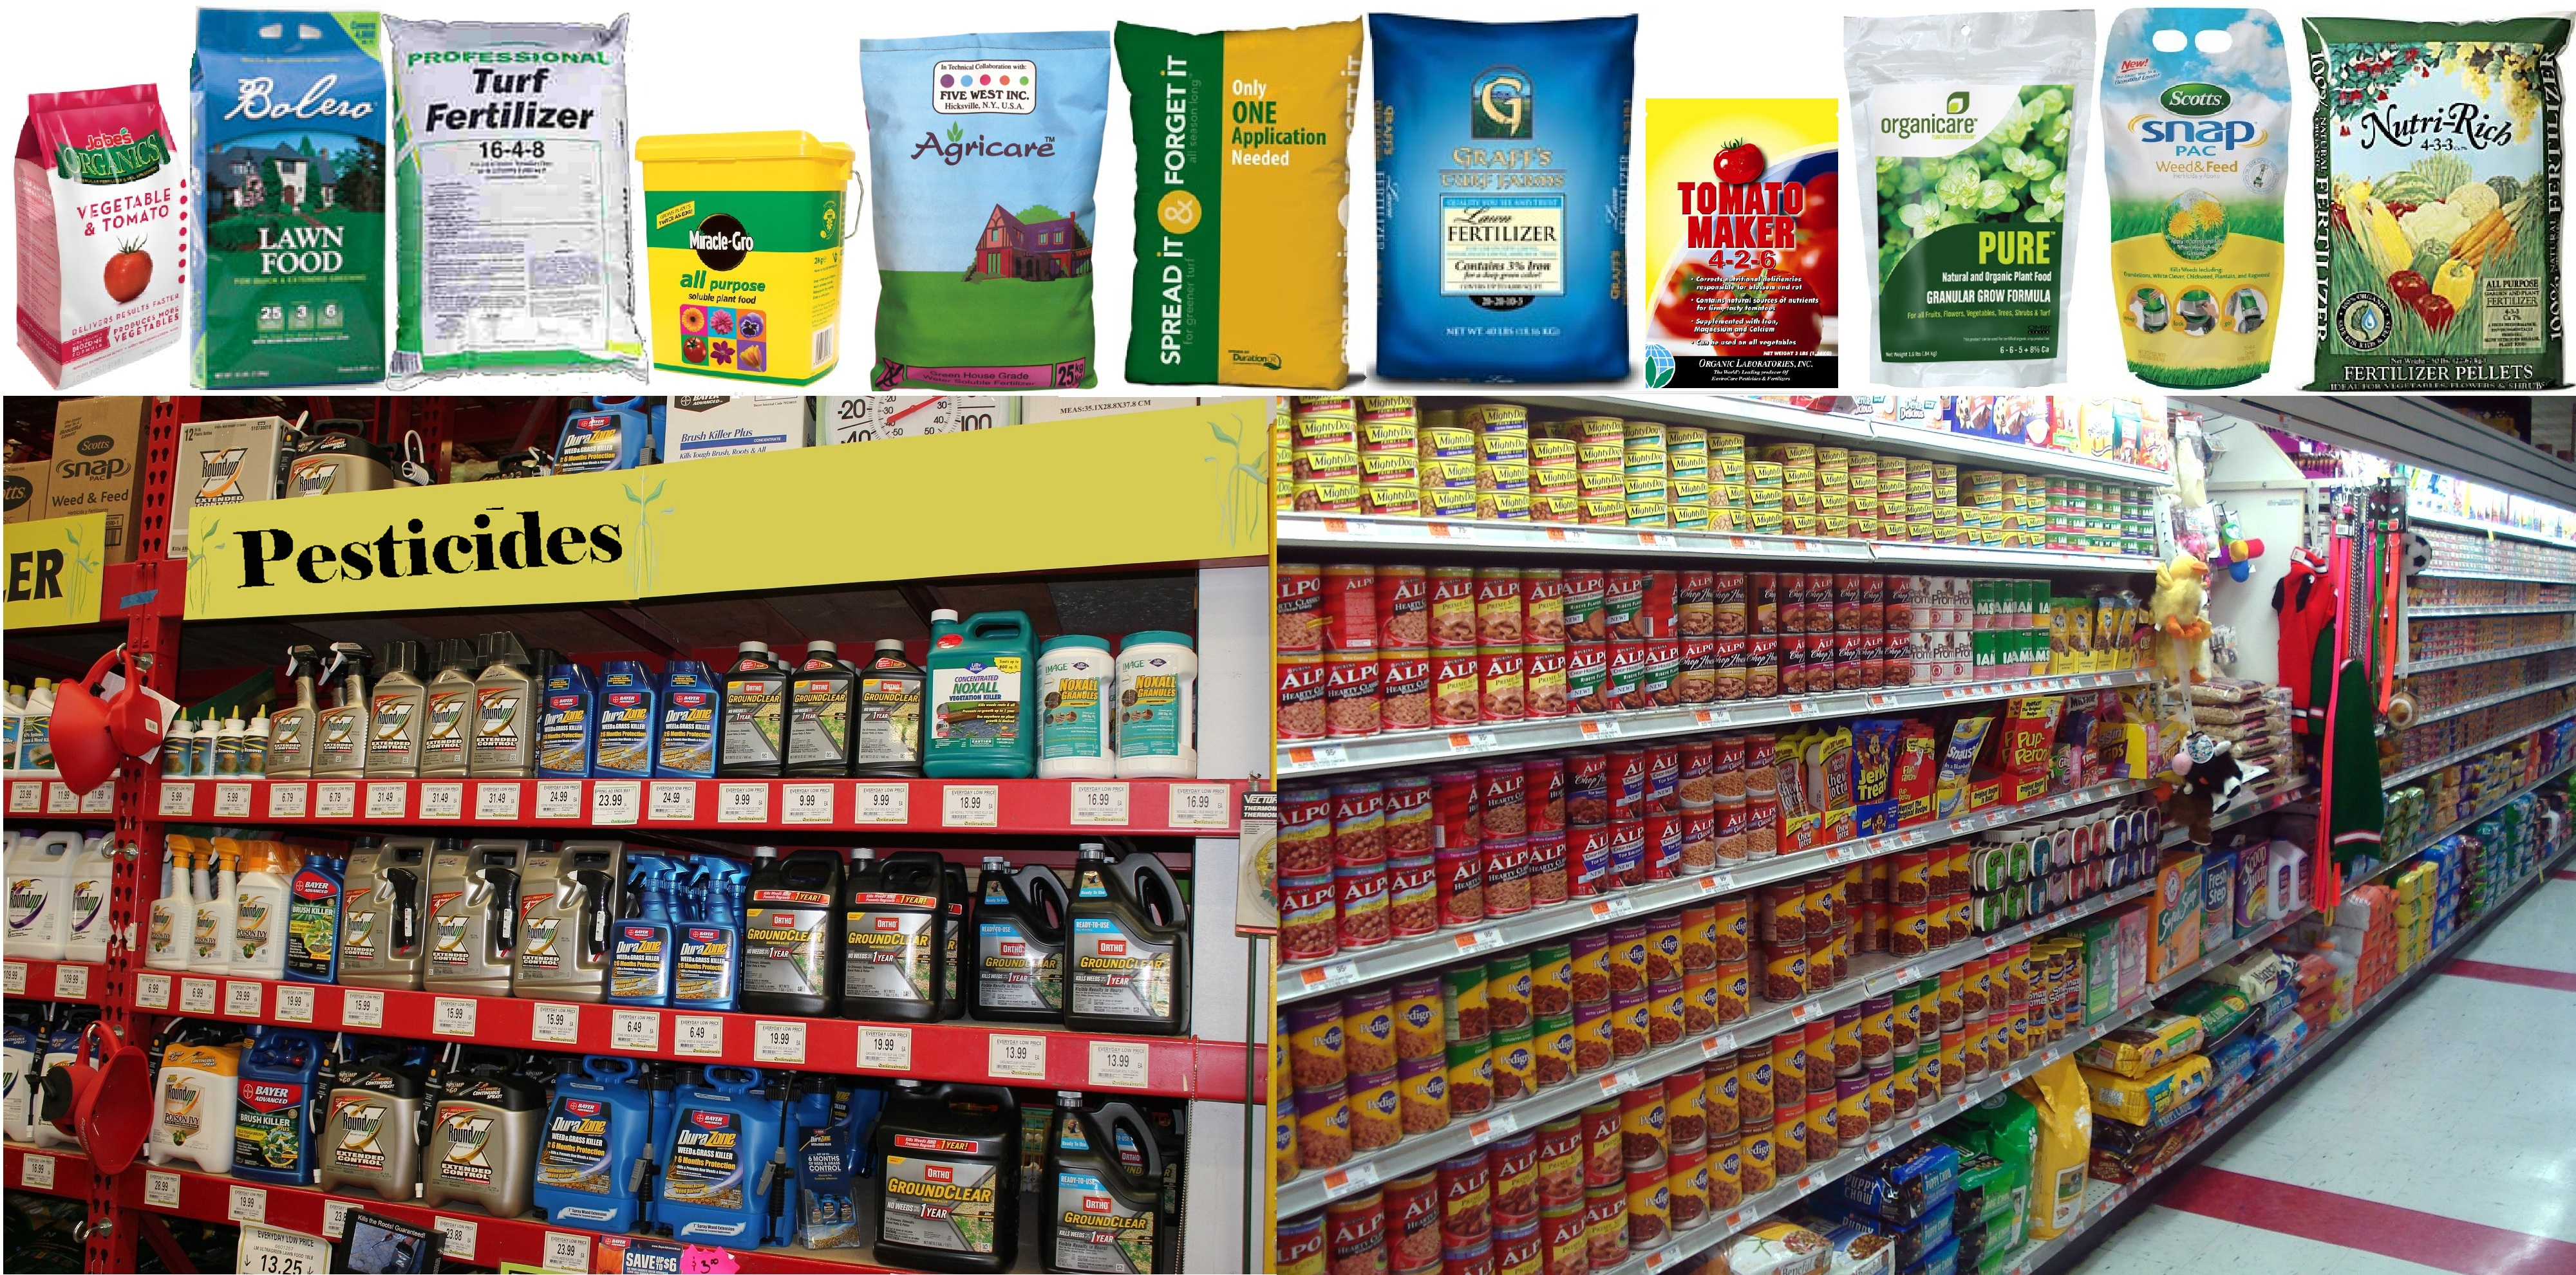 Feed, Fertilizer and Pesticide products on shelves